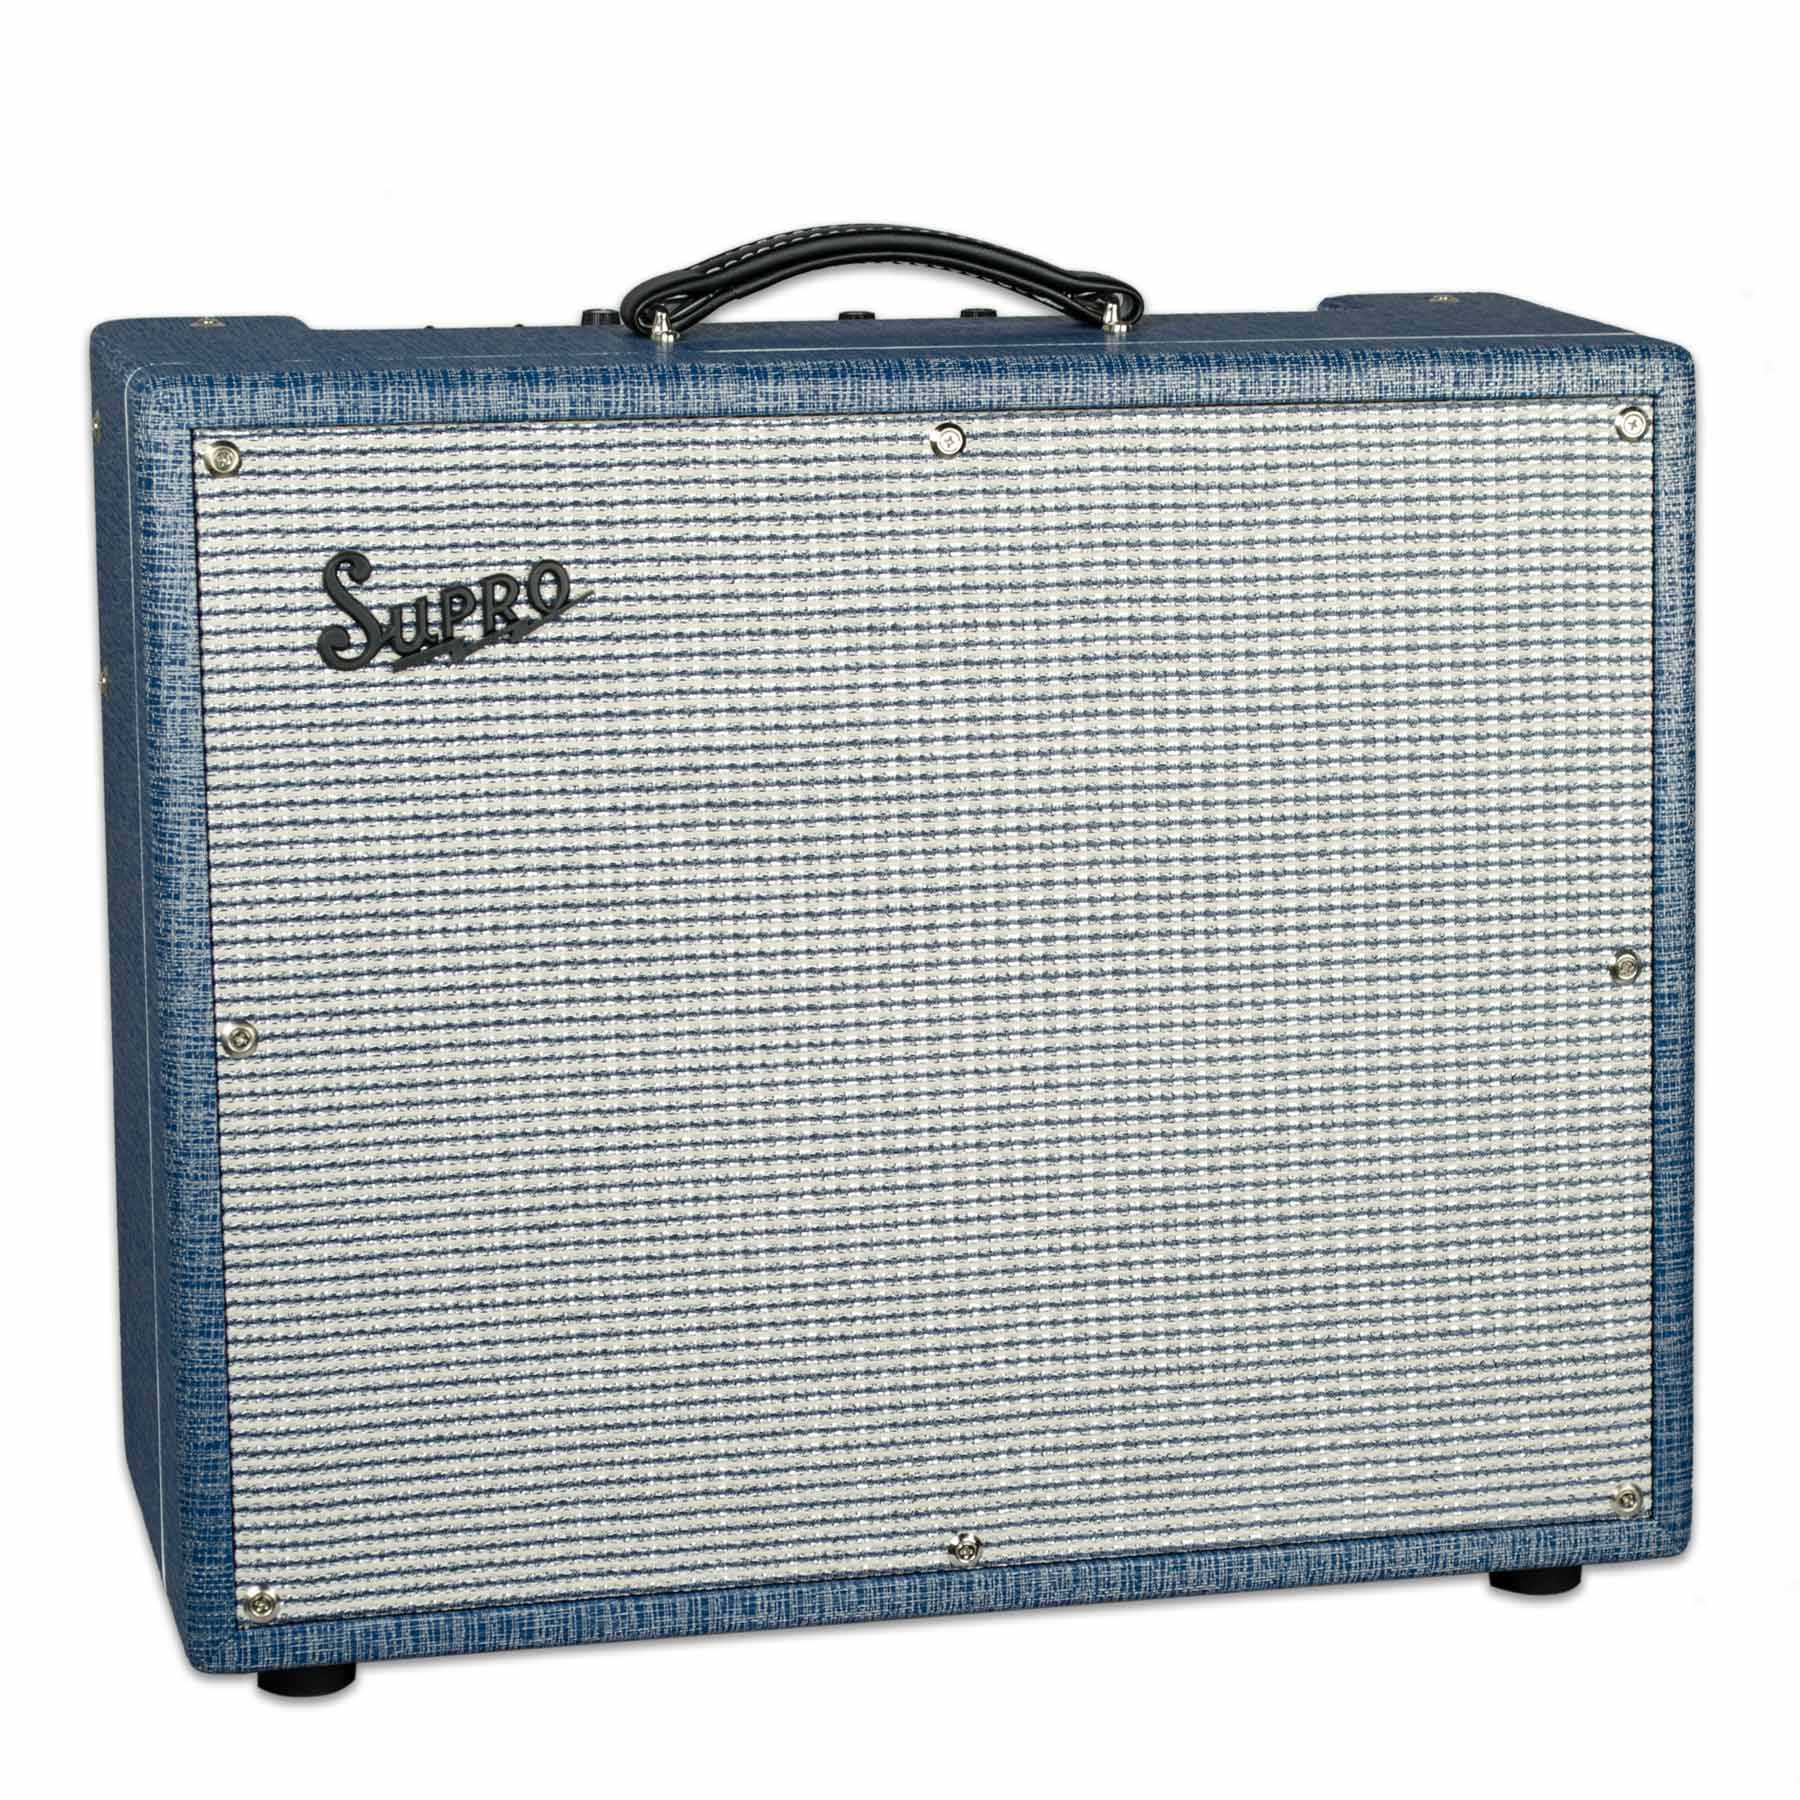 USED SUPRO S6420+ THUNDERBOLT+ AMPLIFIER